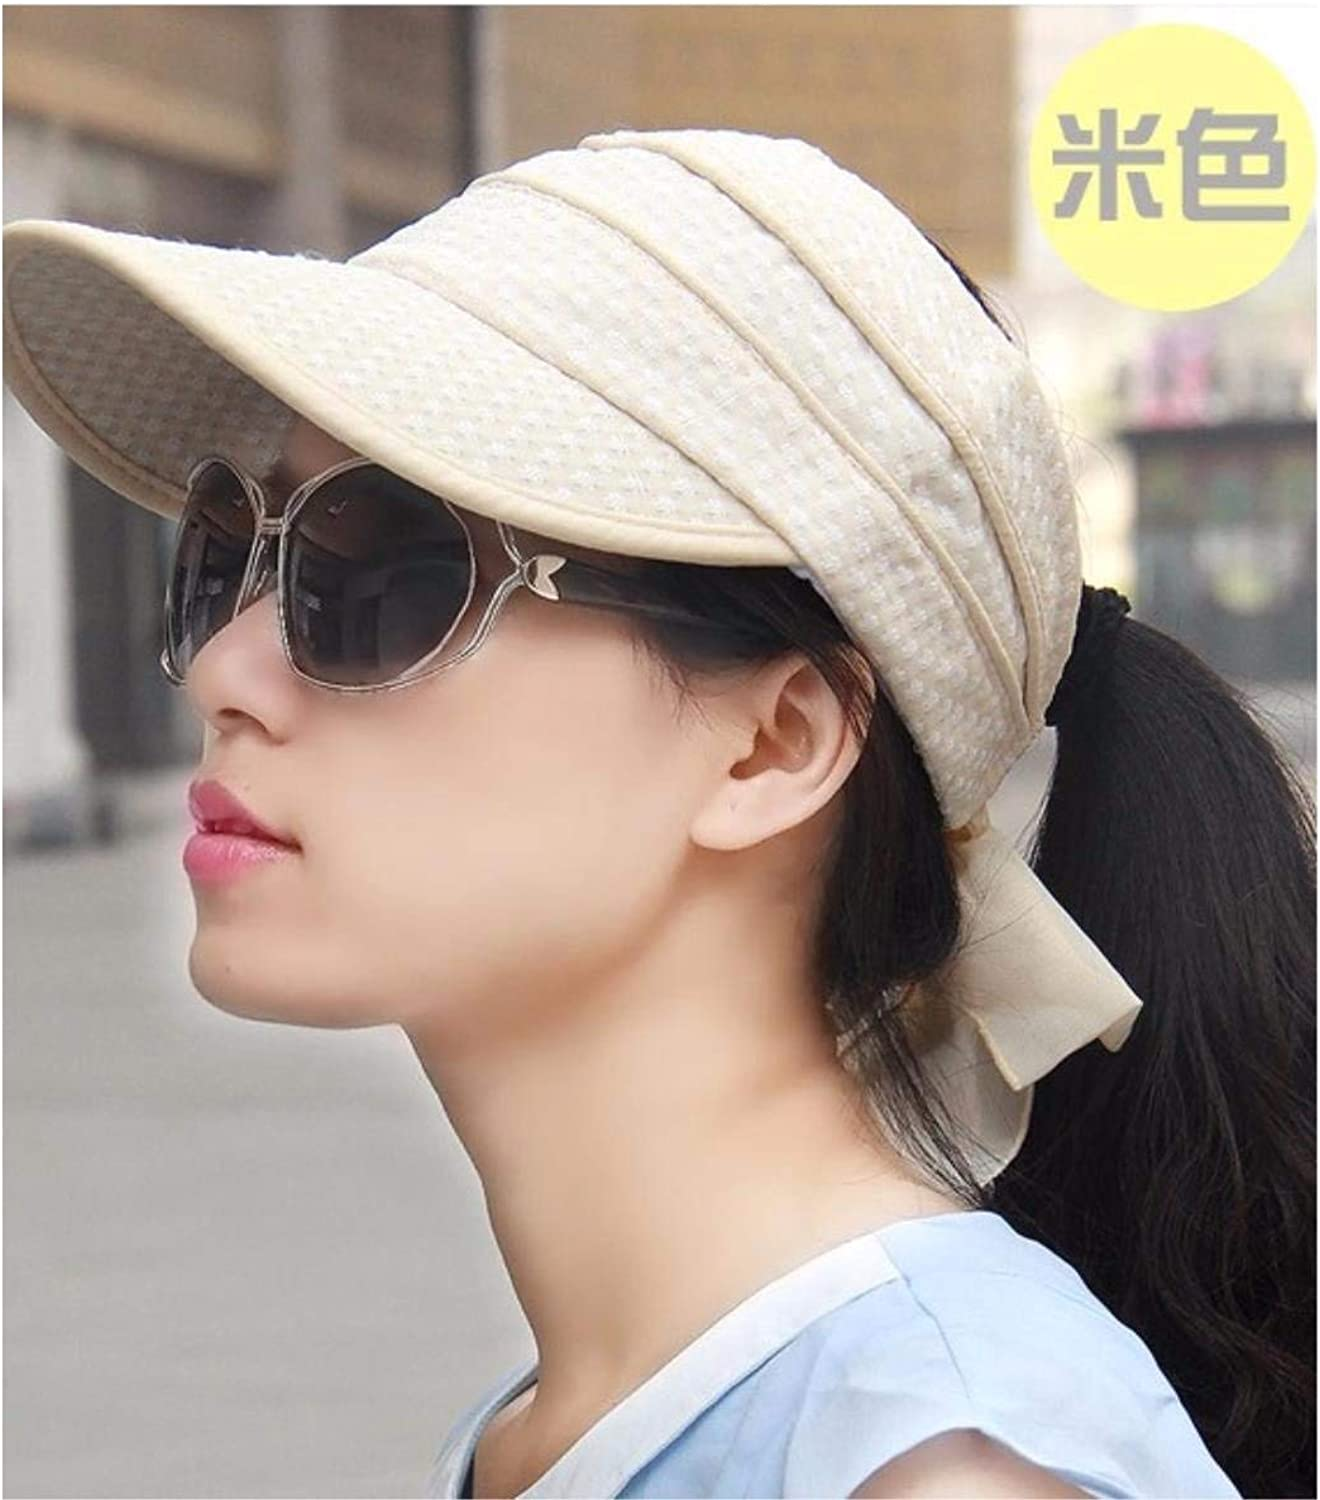 Chuiqingnet Hat female small fresh summer cap collapsible Tai Tau Wai empty top hat visor, cycling cap cap sun cap is cool